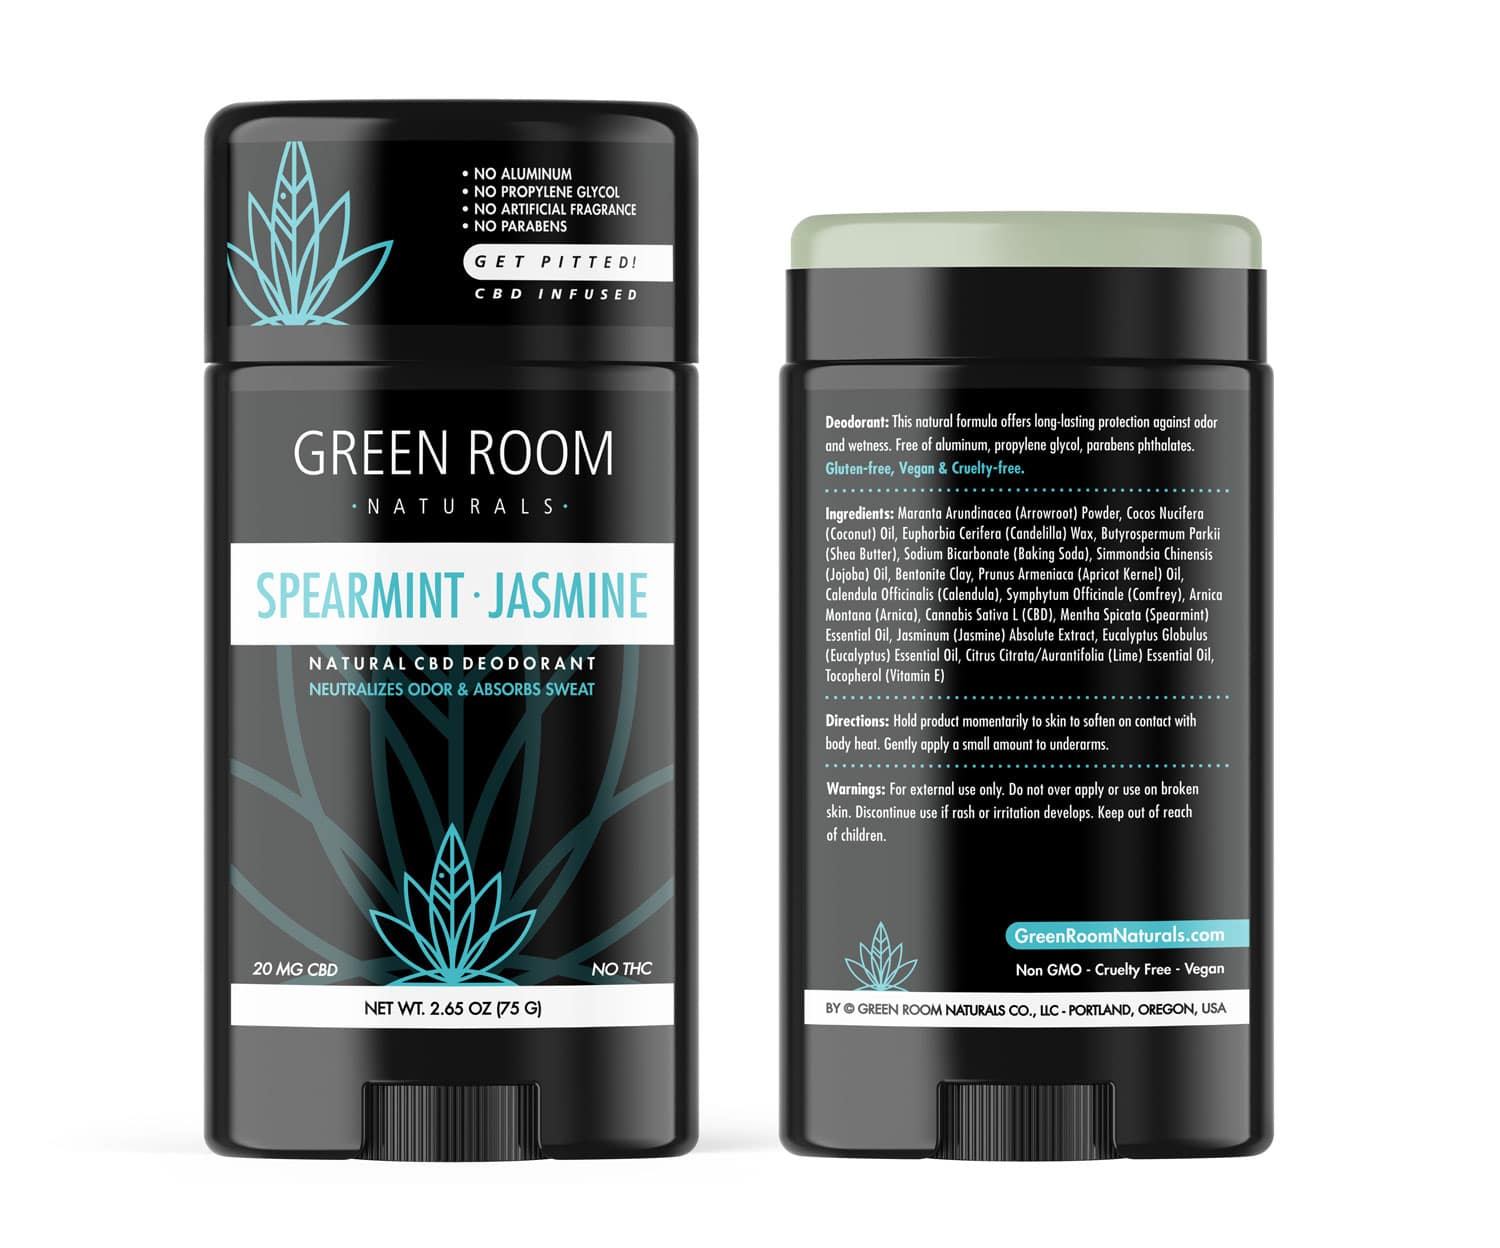 Spearmint-Jasmine Deodorant by Green Room Naturals designed by Mark Boehly-Graphicsbyte Creative